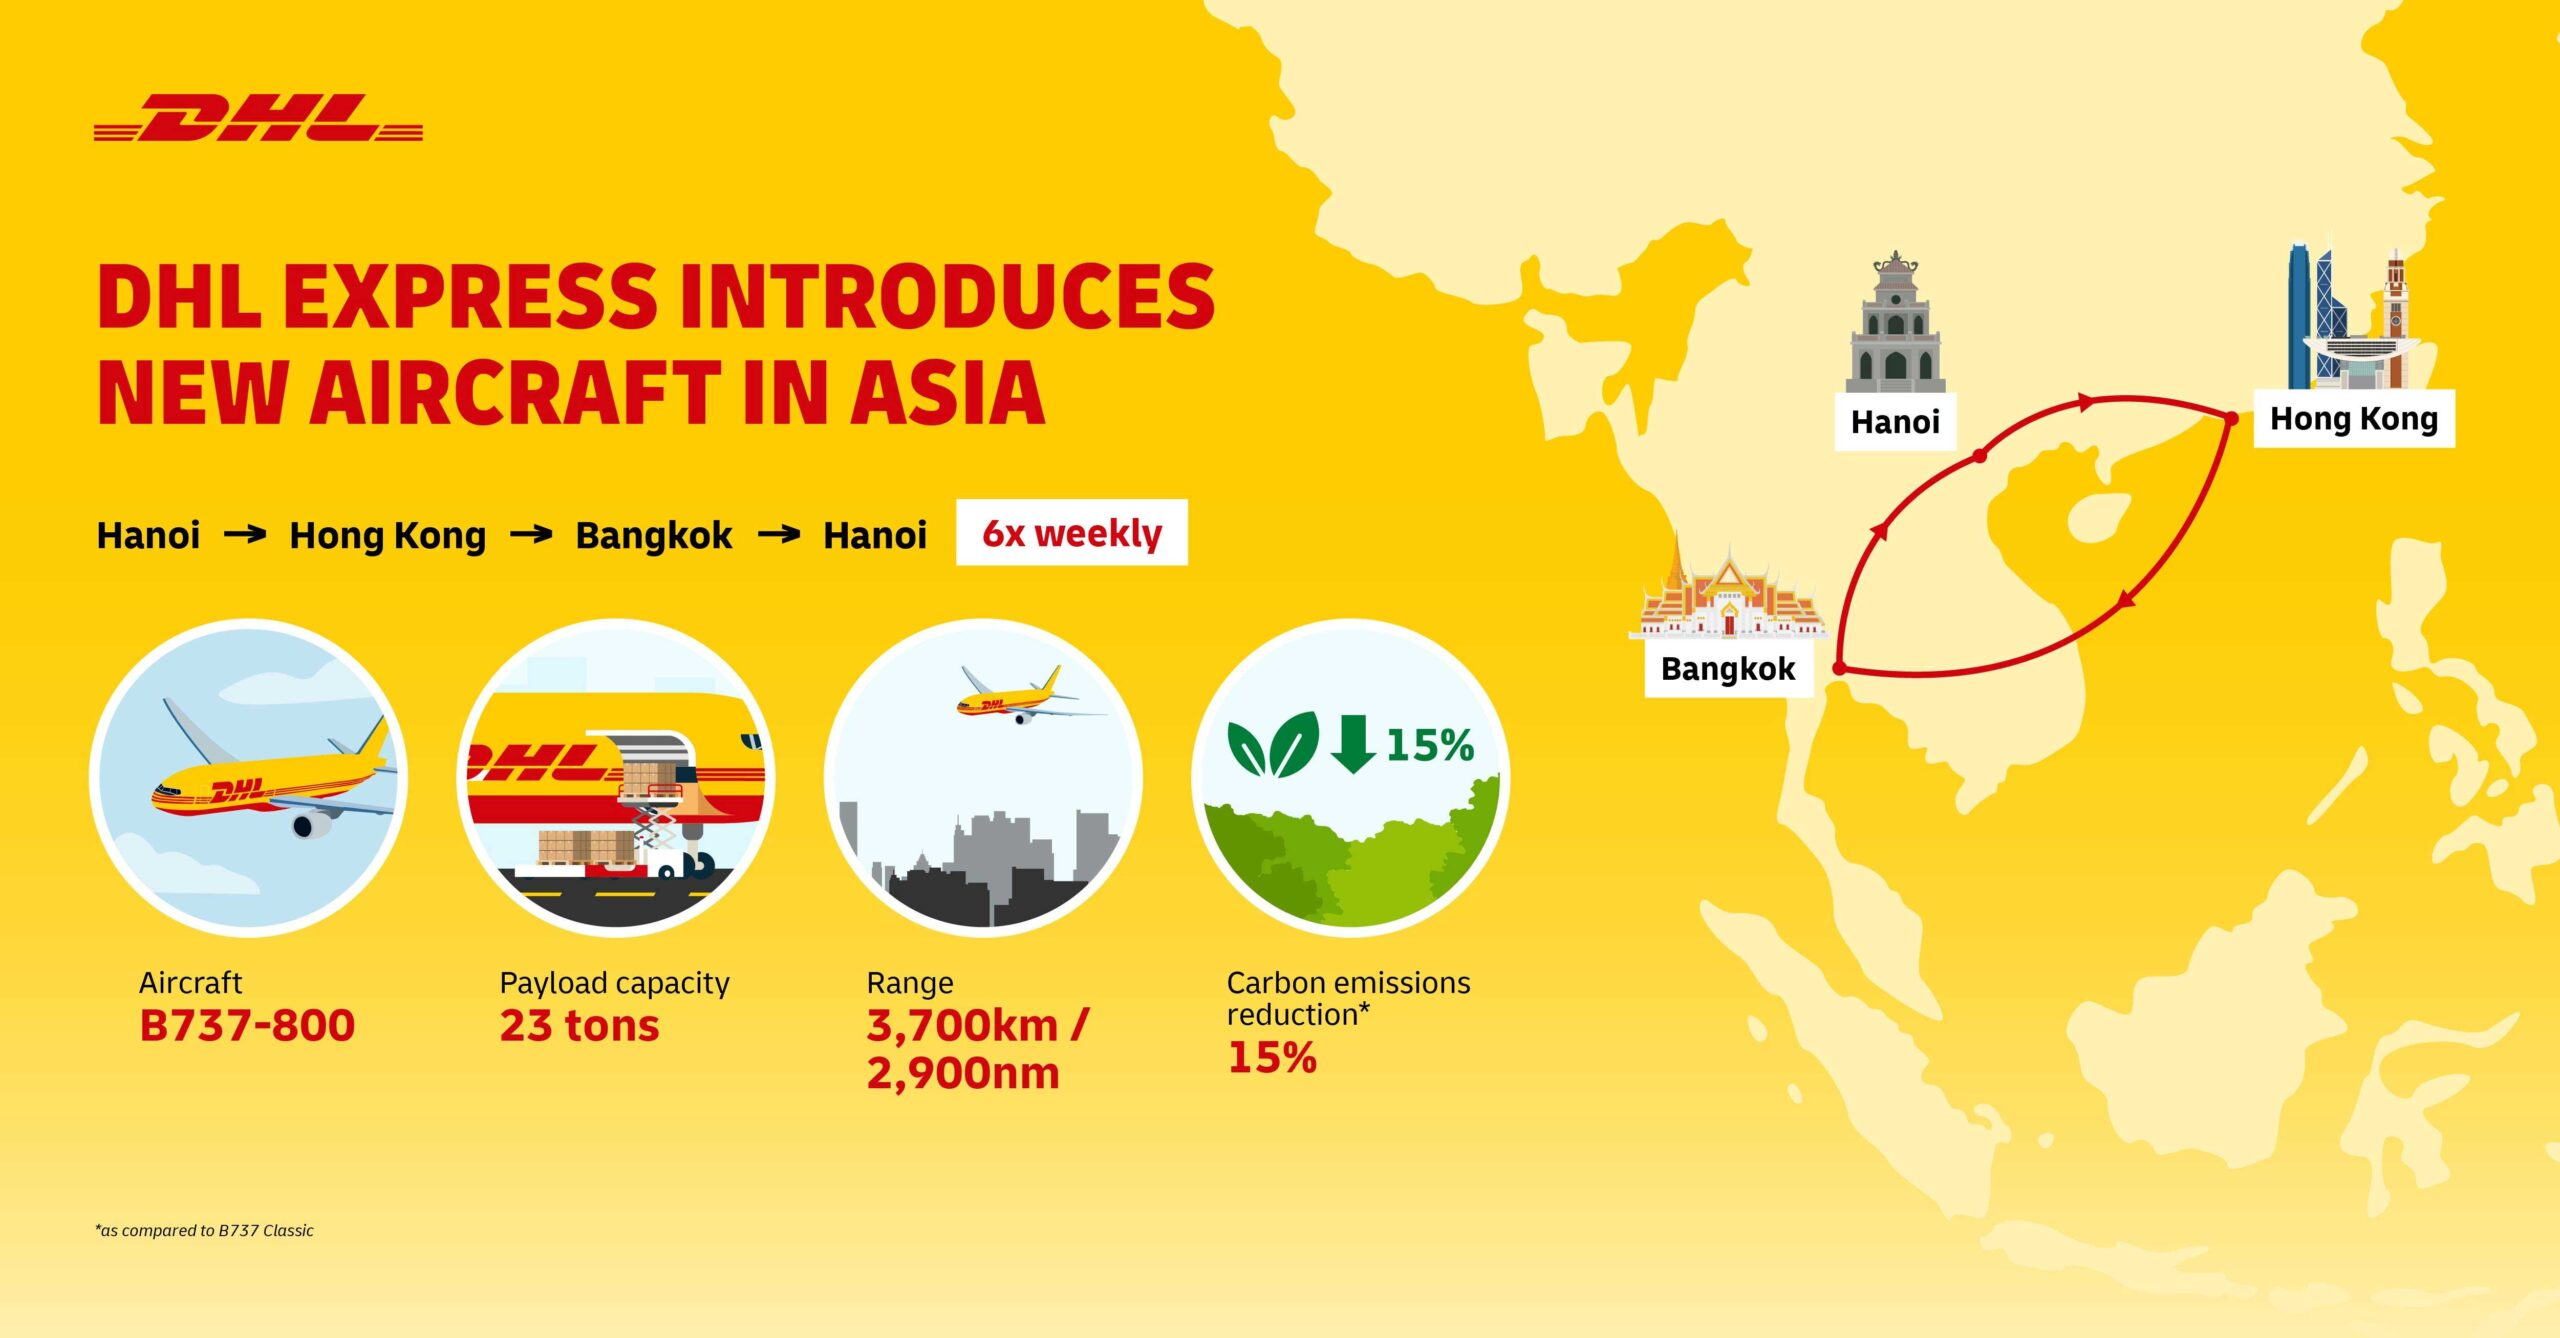 DHL Express introduces new aircraft in Asia